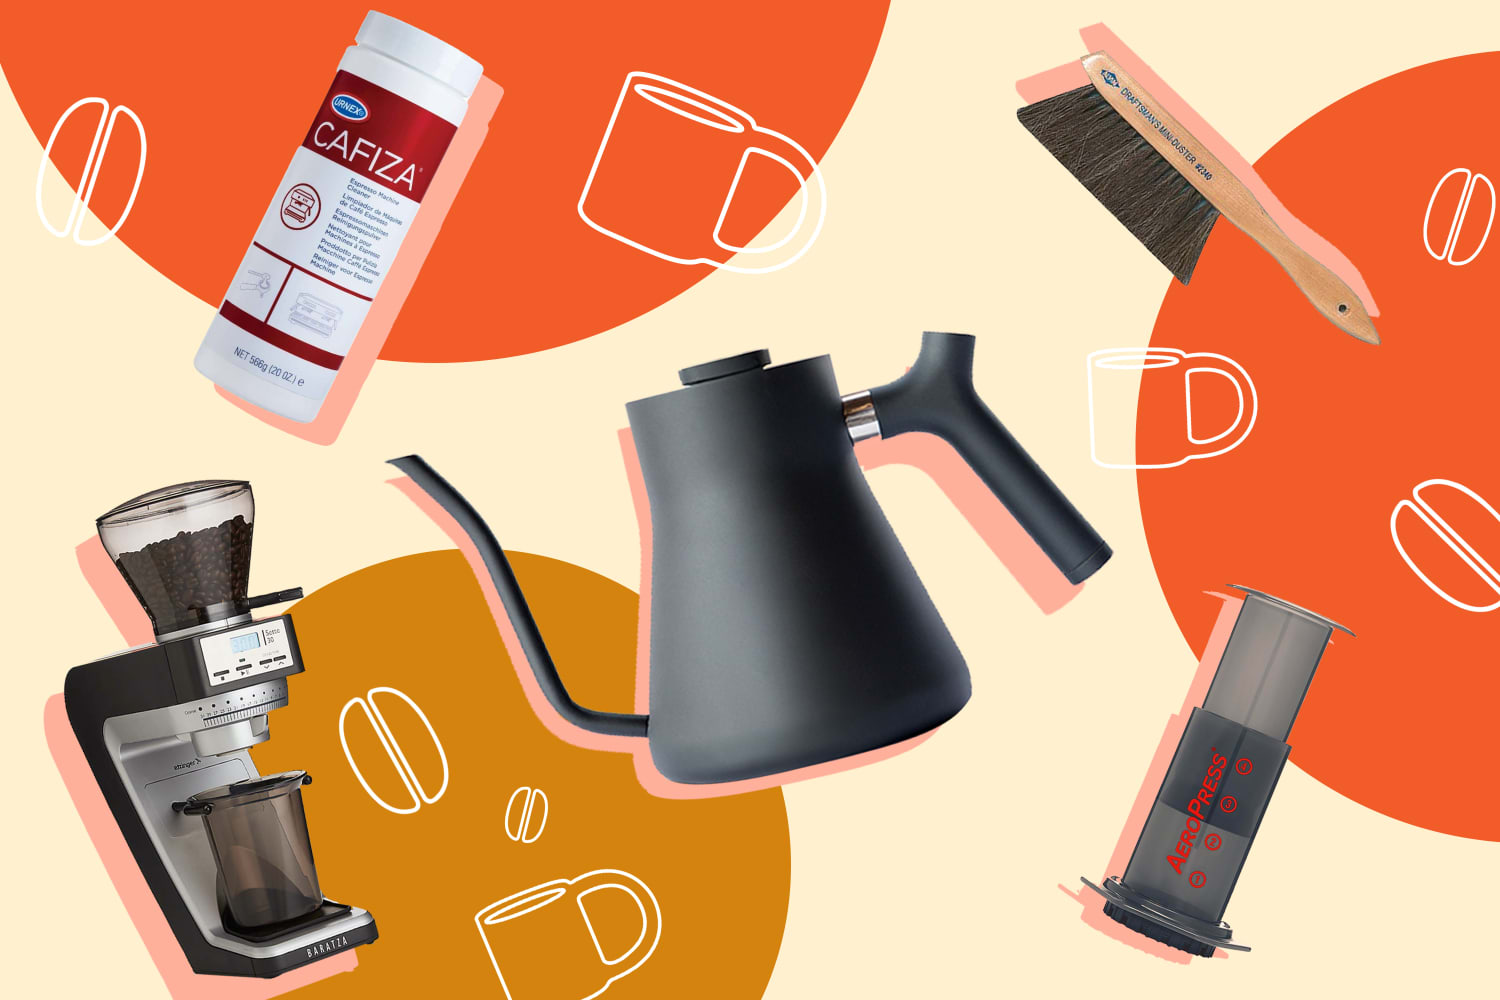 We Asked 22 Coffee Pros About the Gear They Use at Home — And They Had Lots of Surprises